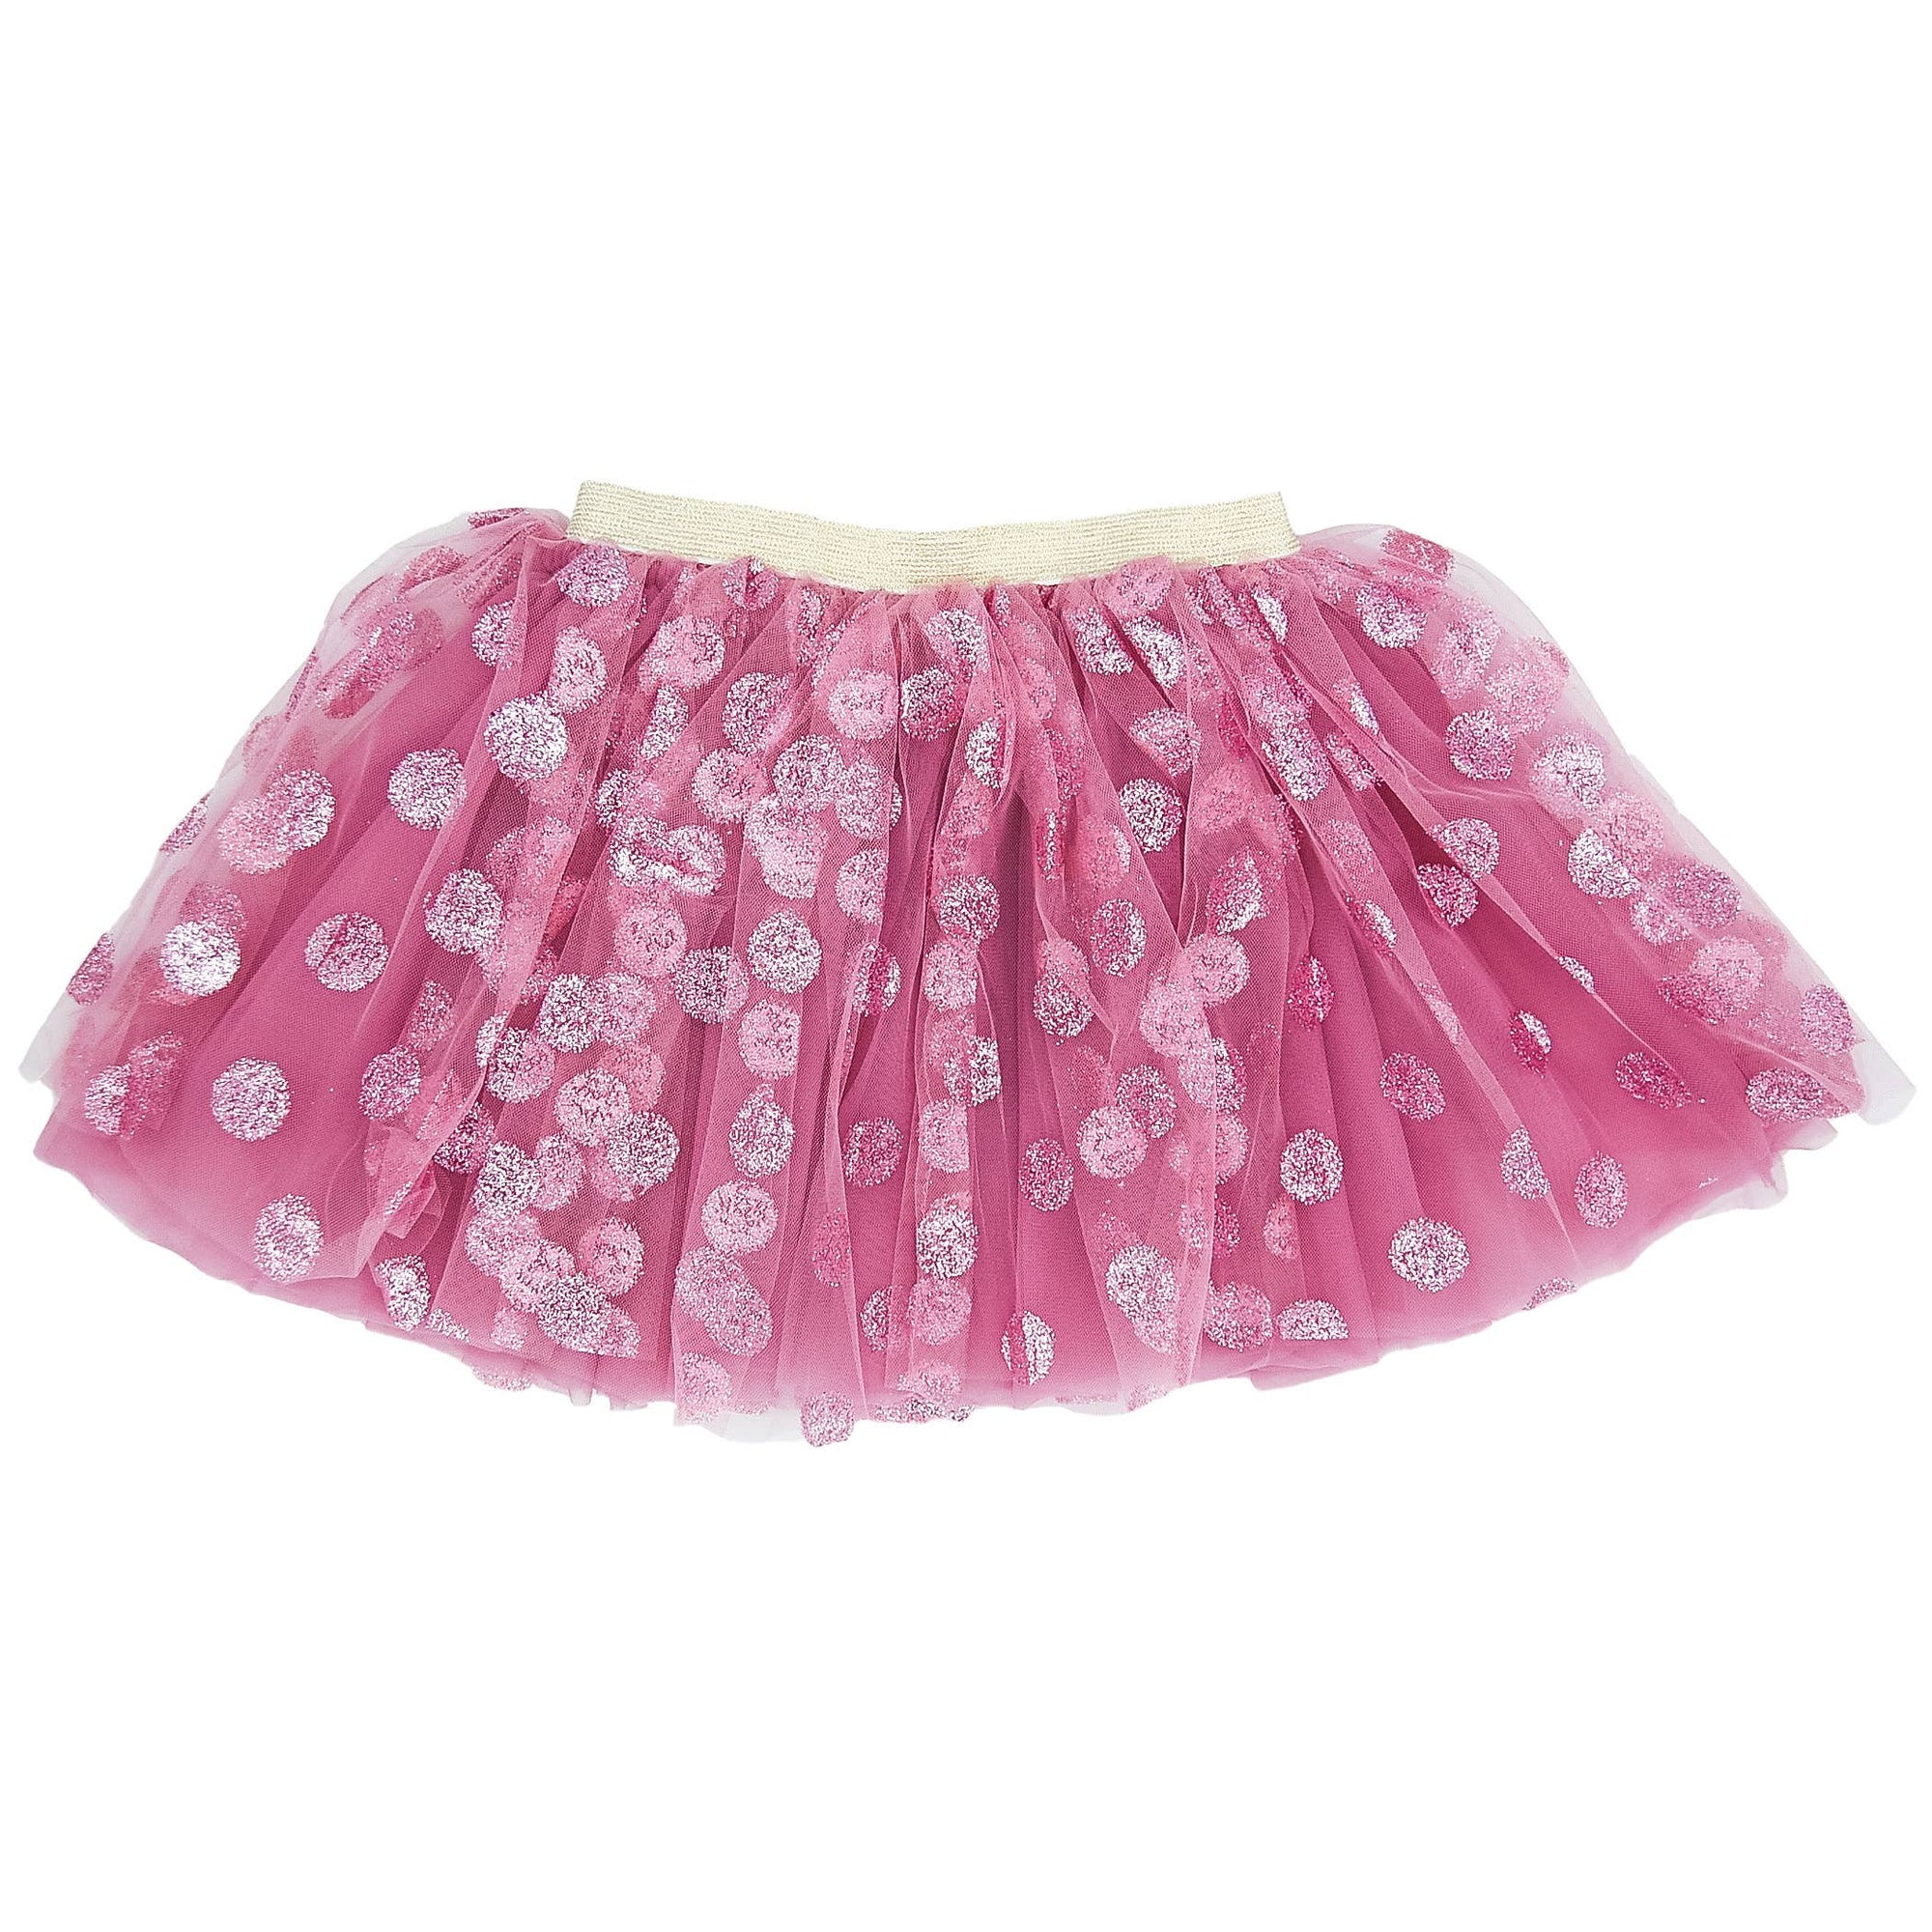 Polka Dot Tutu - Blush Pink